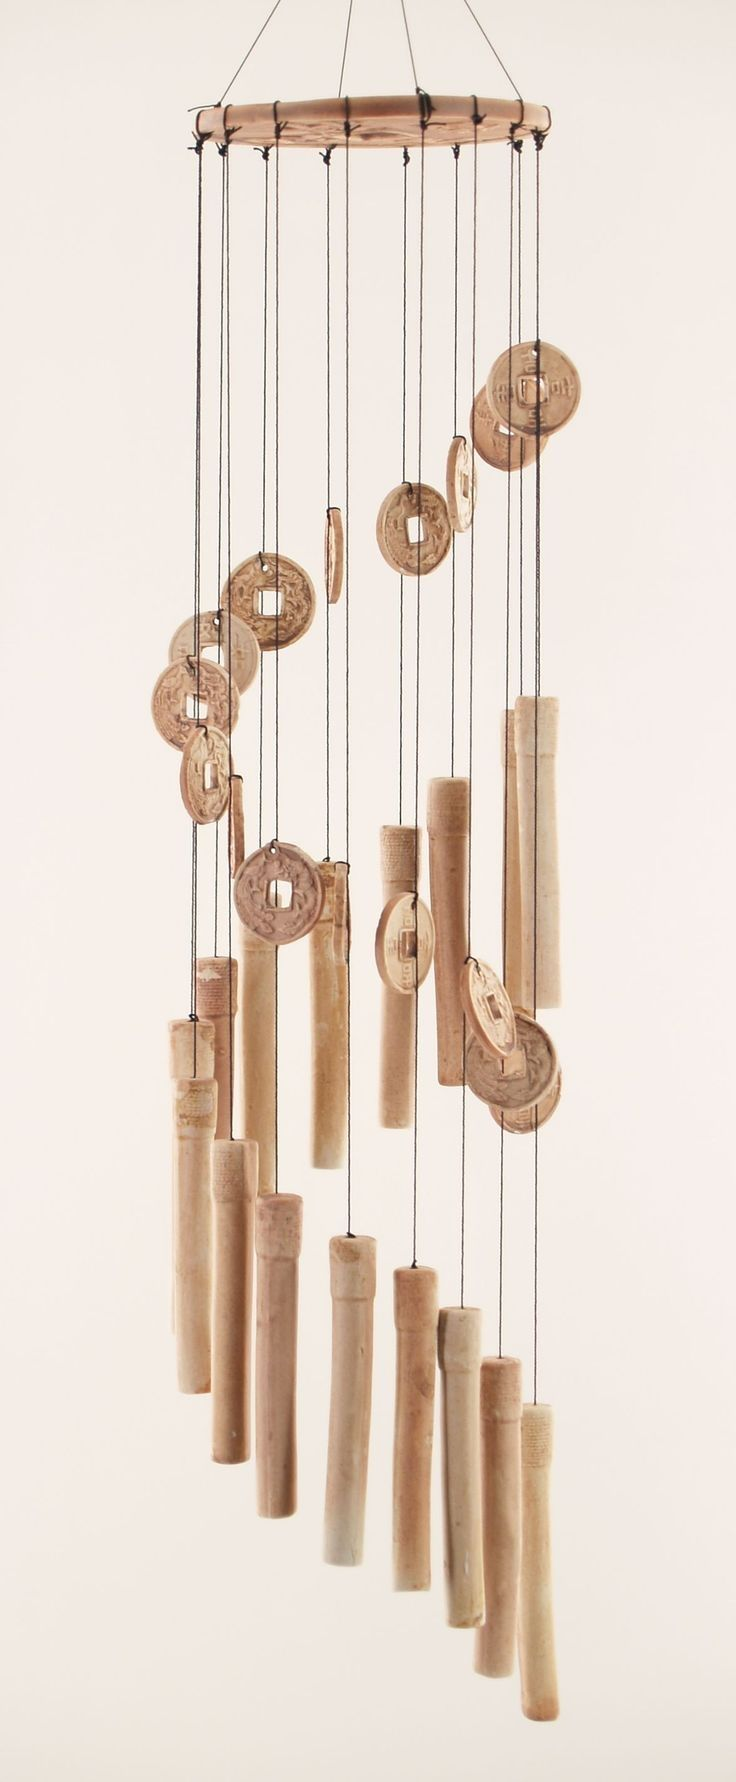 Various backyard ideas wind chime bamboo amp coins clay for Wind chime ideas